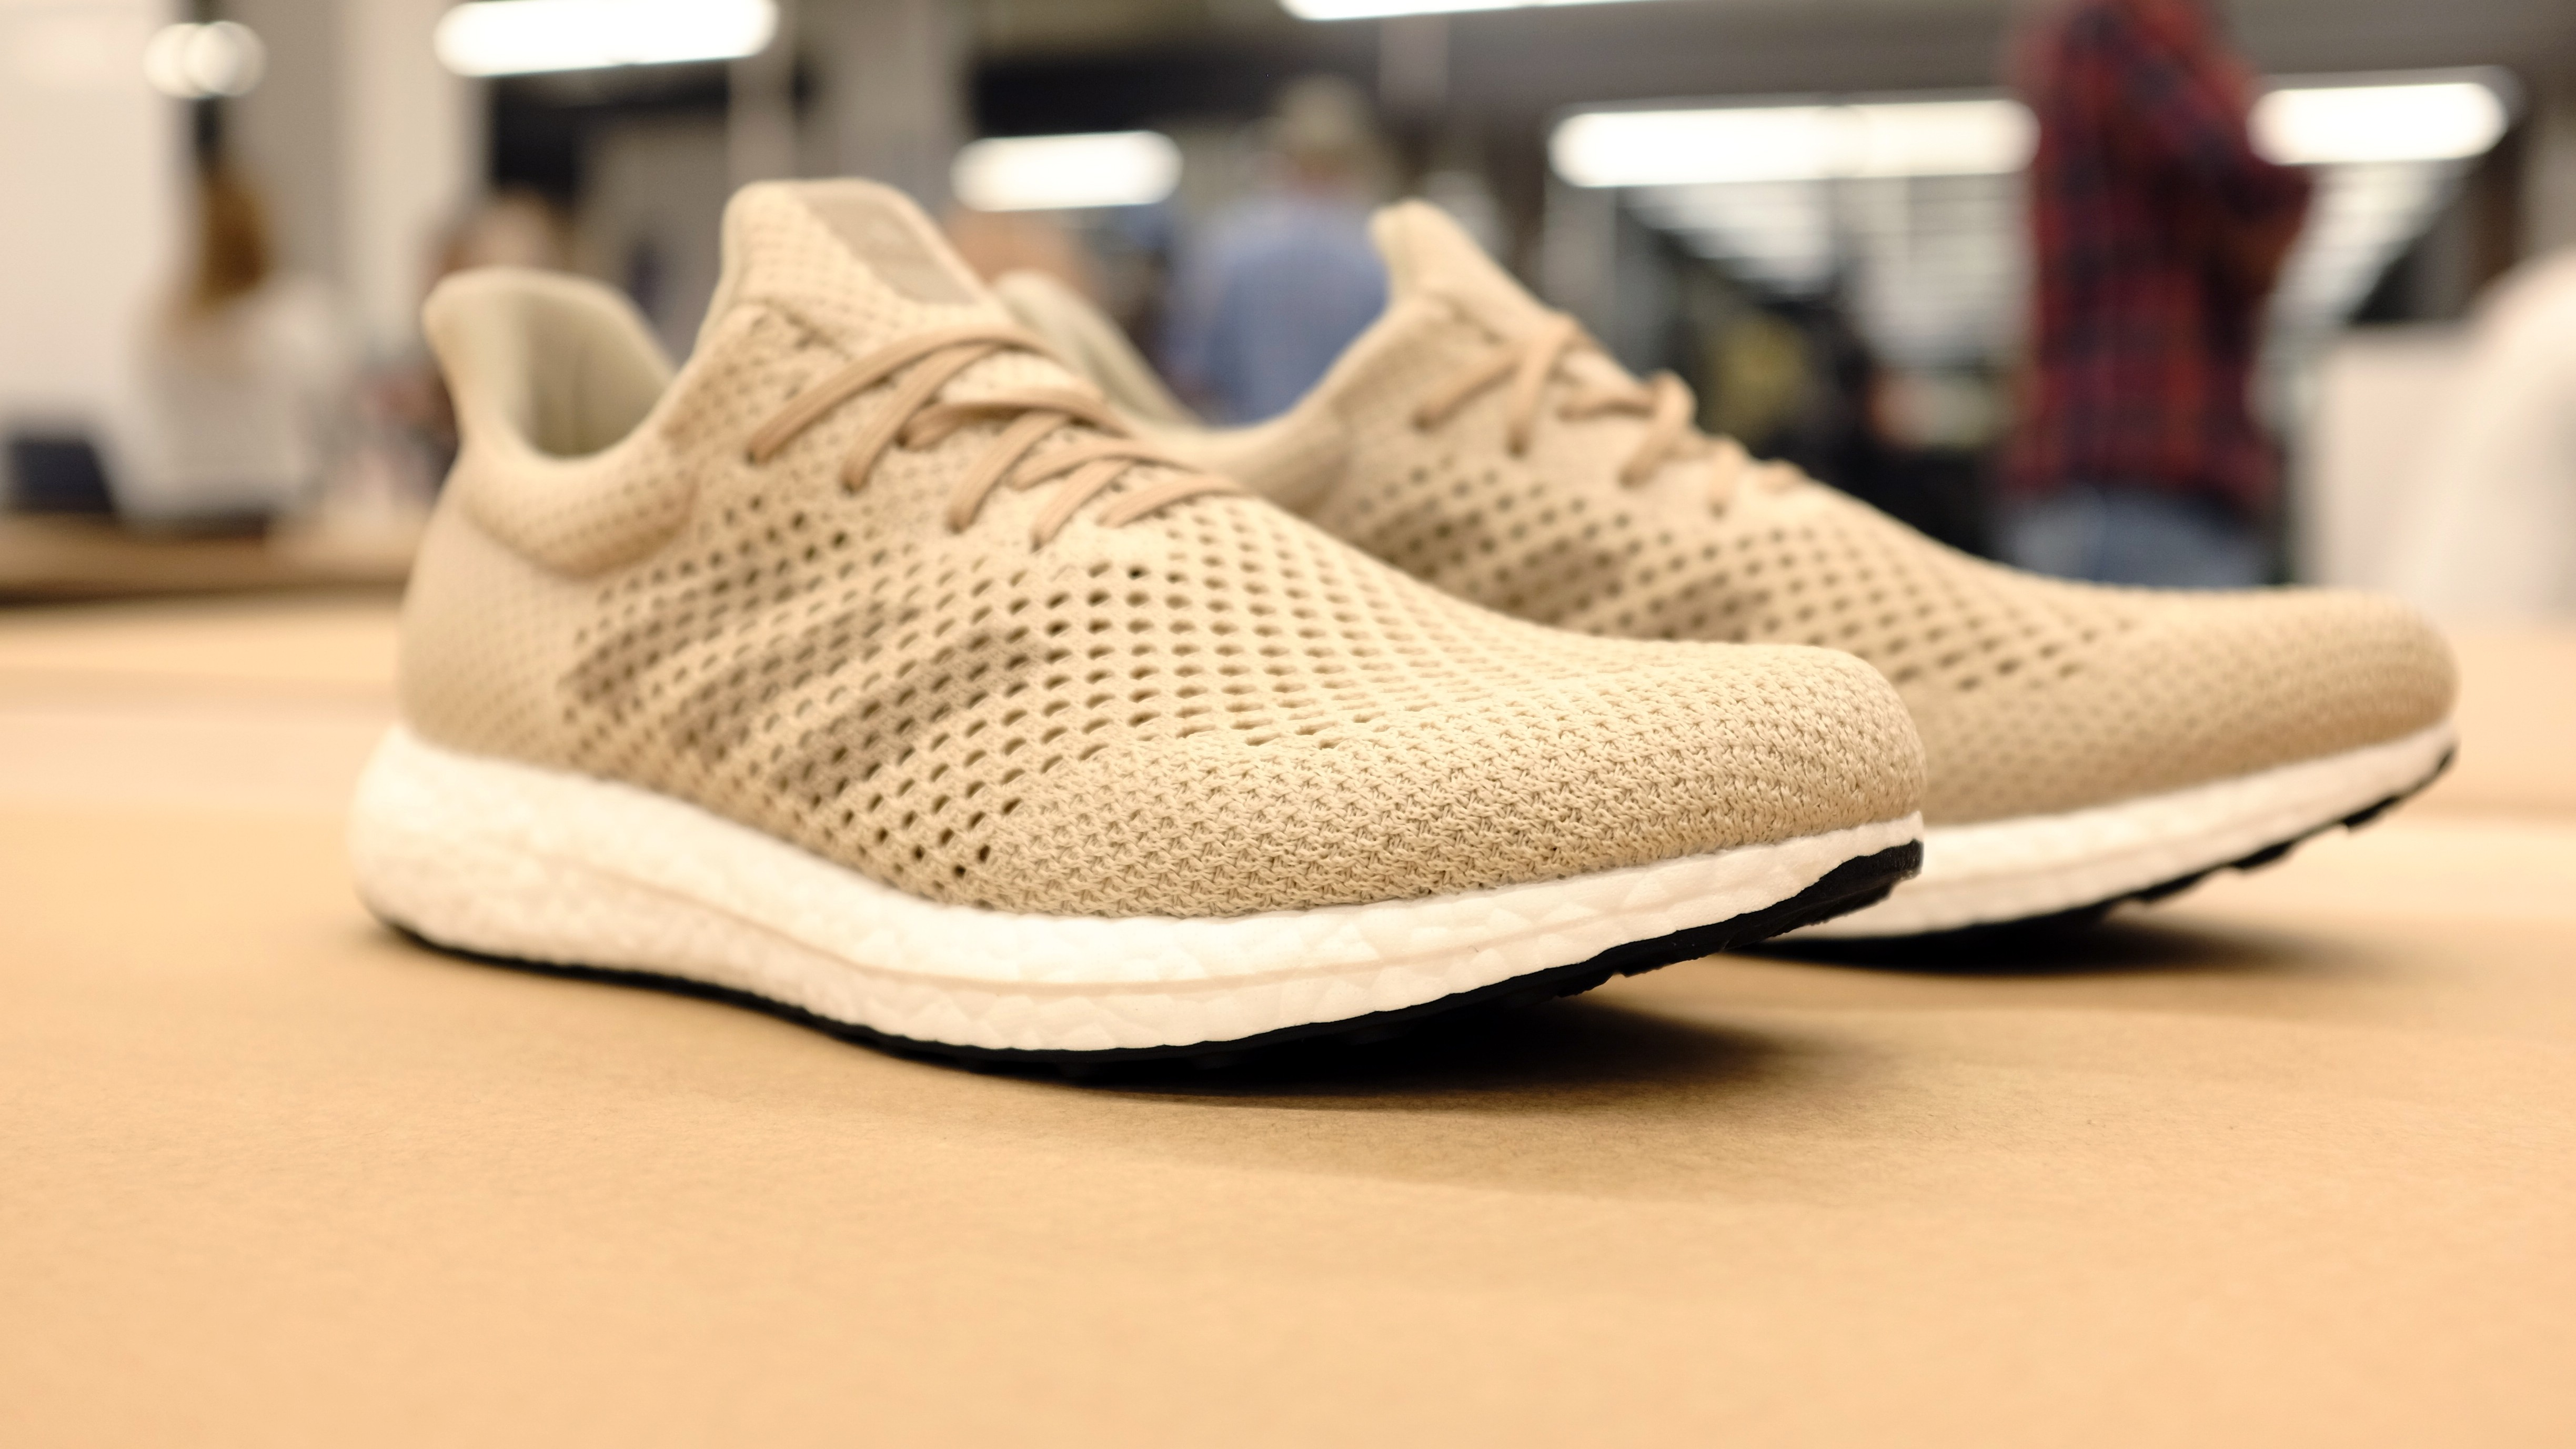 The New Adidas Are Made From Lab-Grown Spider Silk